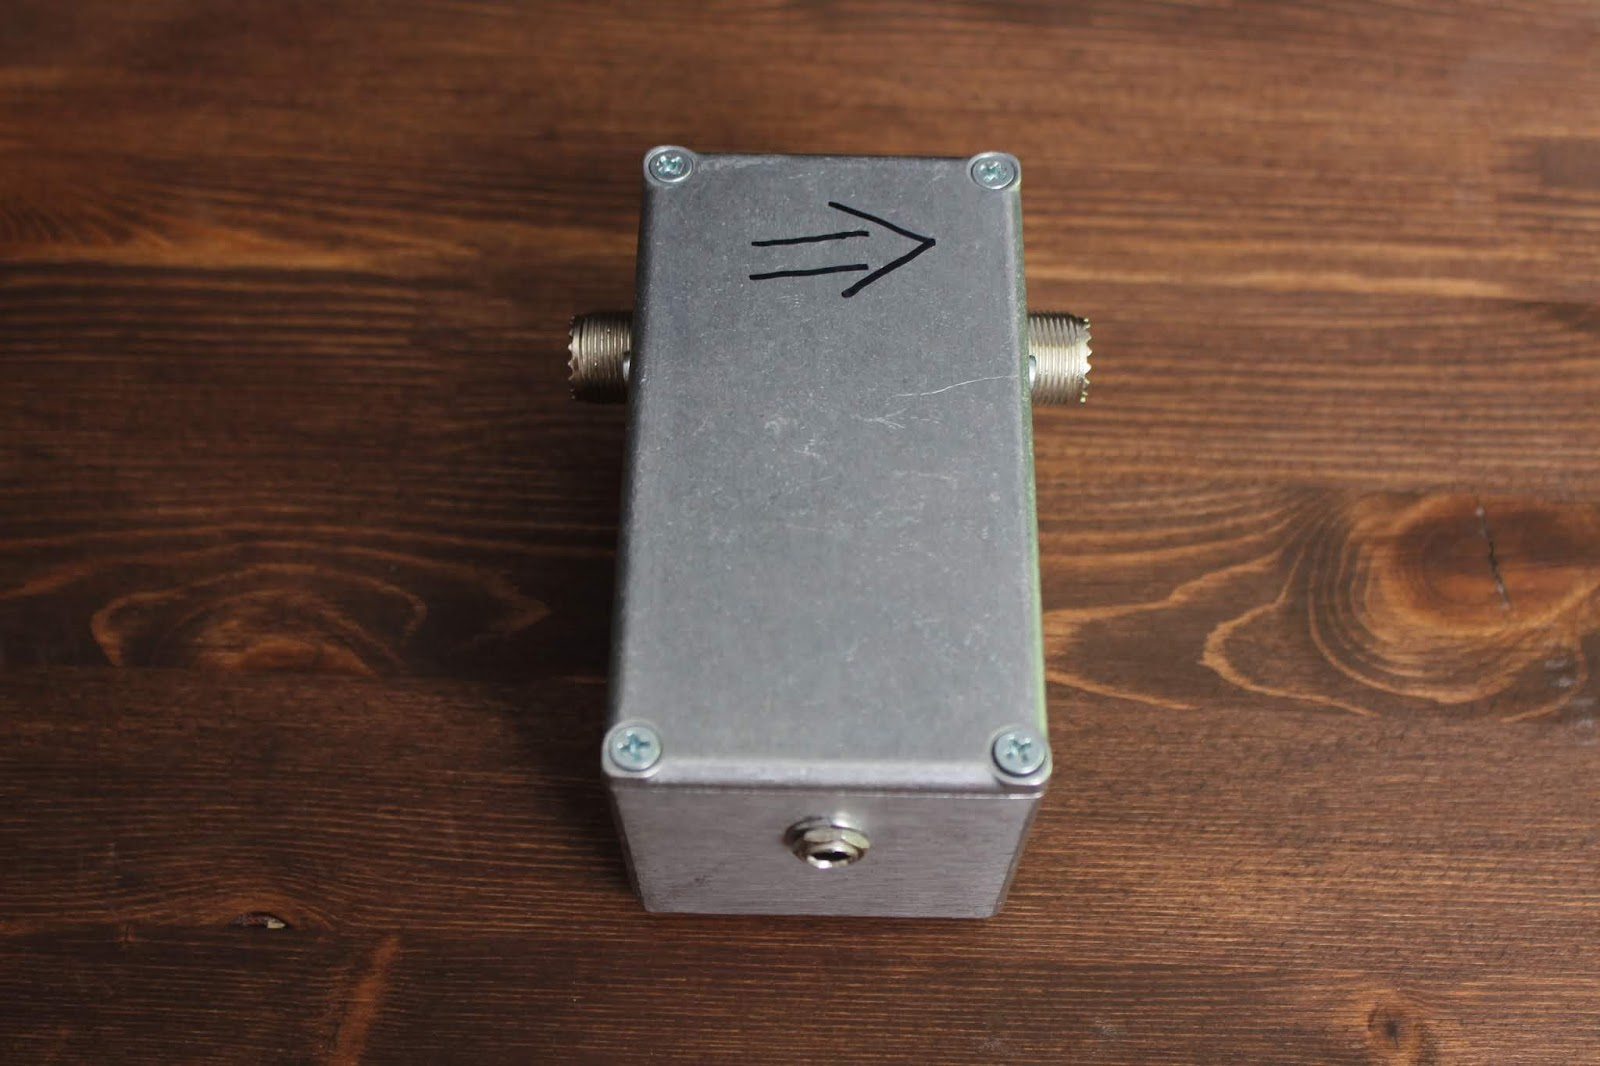 Ham radio and SWL: SWR/PWR meter with Wi-Fi interface